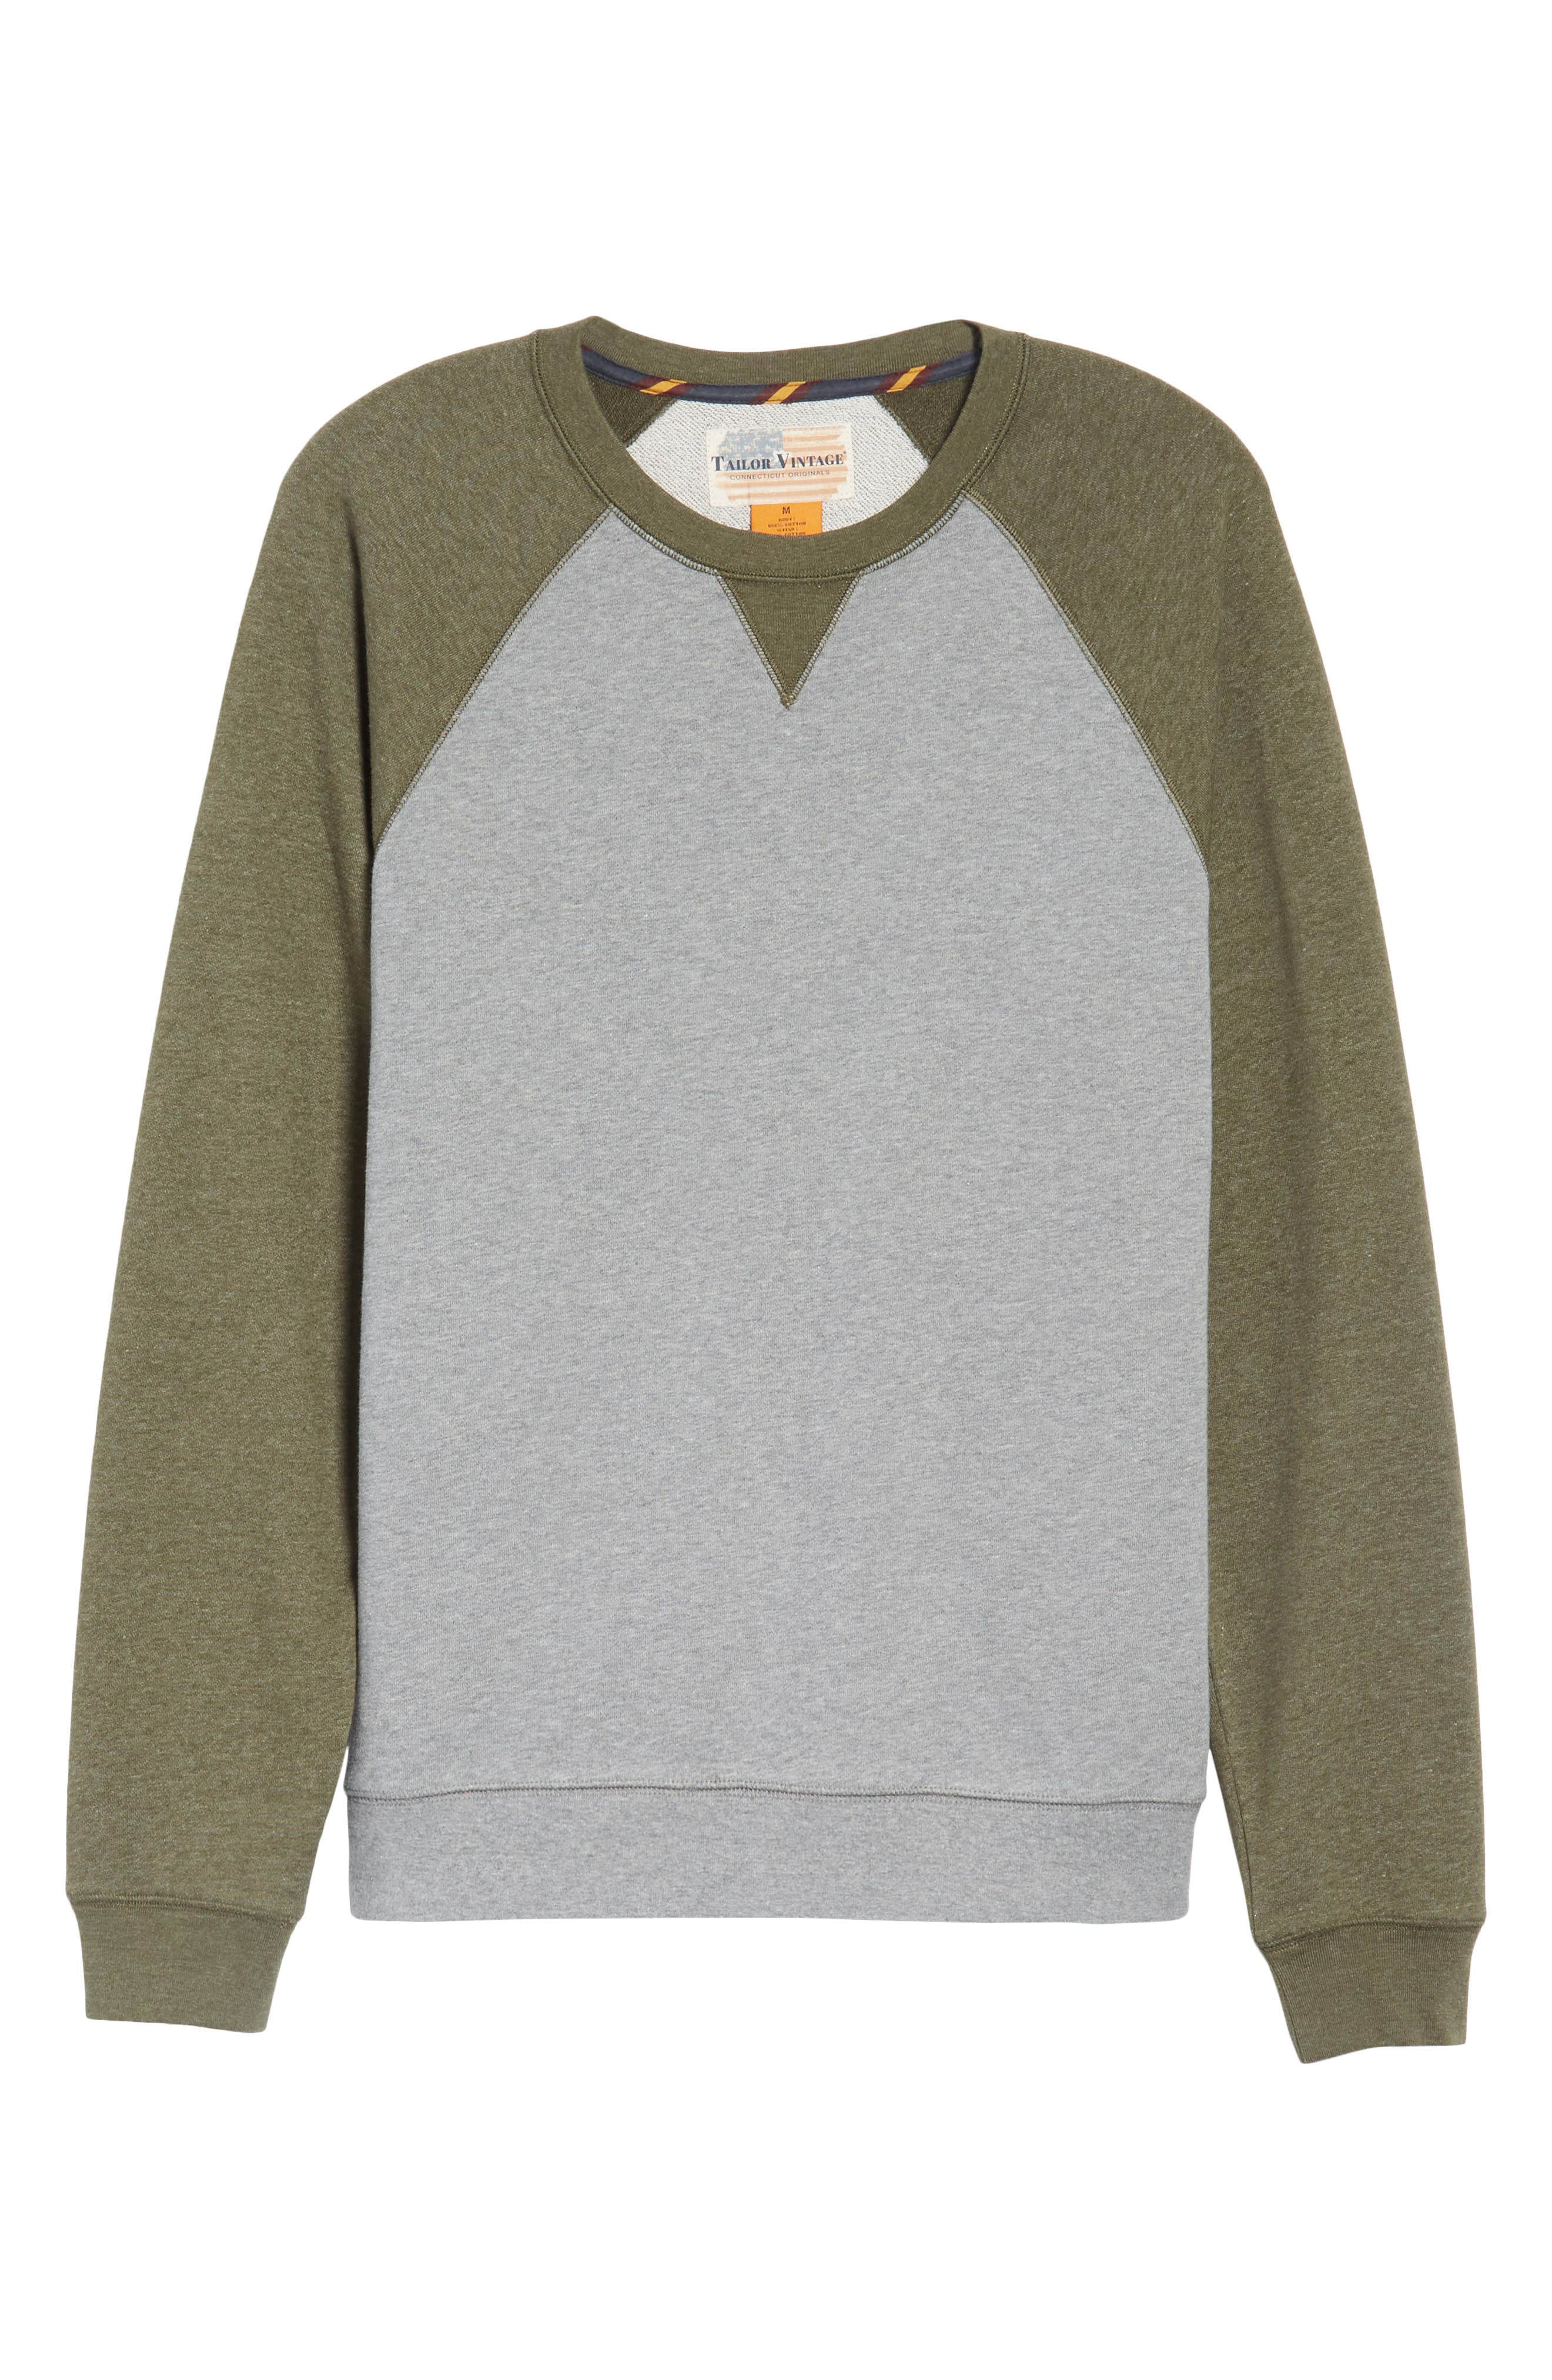 Colorblock French Terry Sweatshirt,                             Alternate thumbnail 6, color,                             032